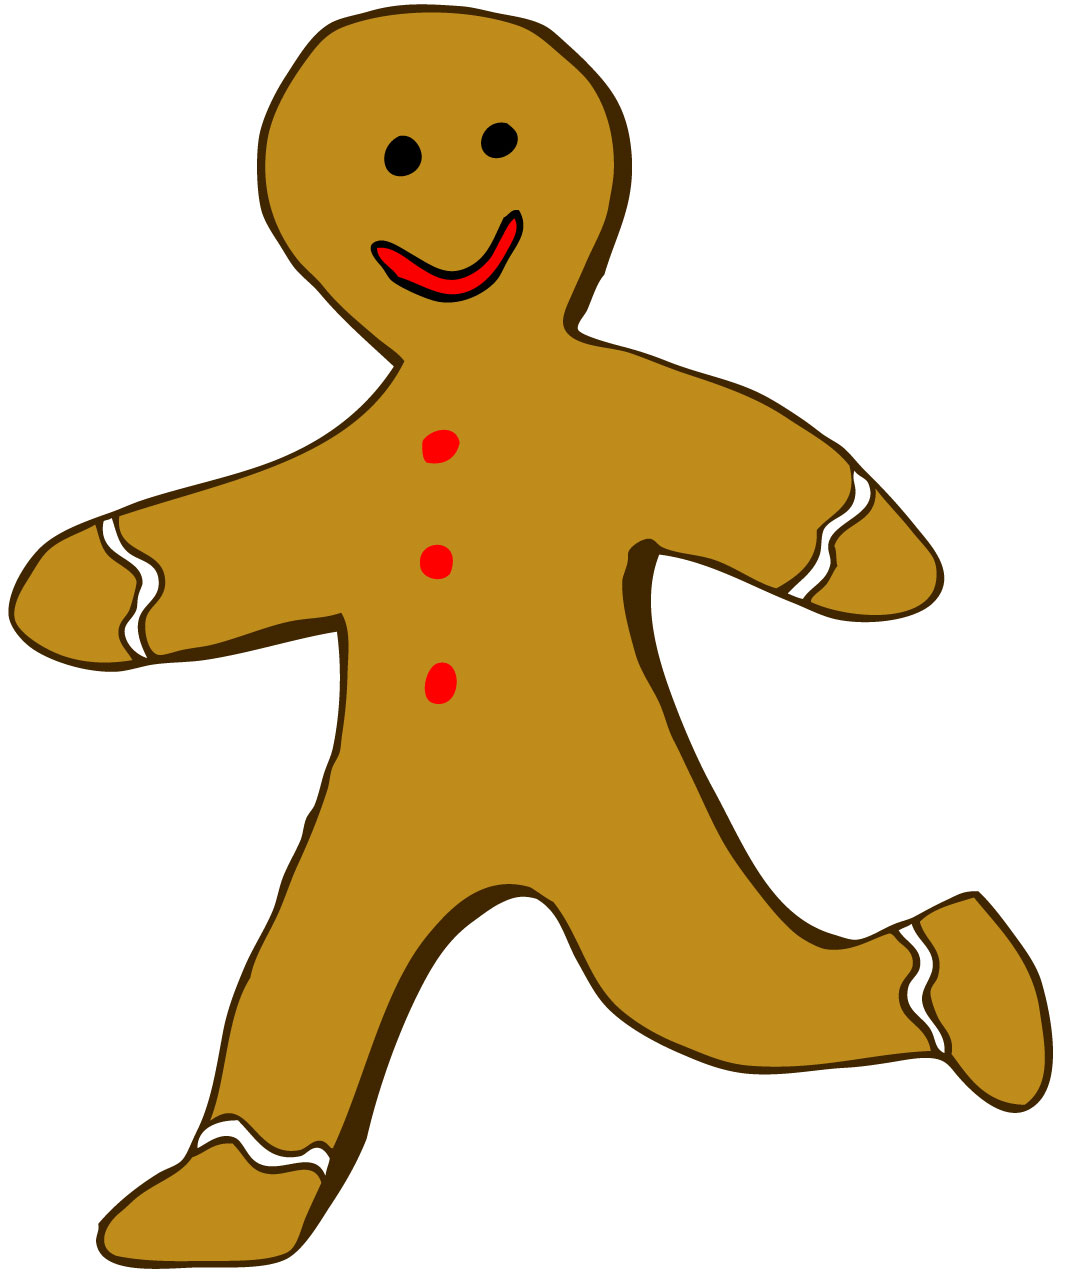 Gingerbread clipart story Running Story man Gingerbread gingerbread